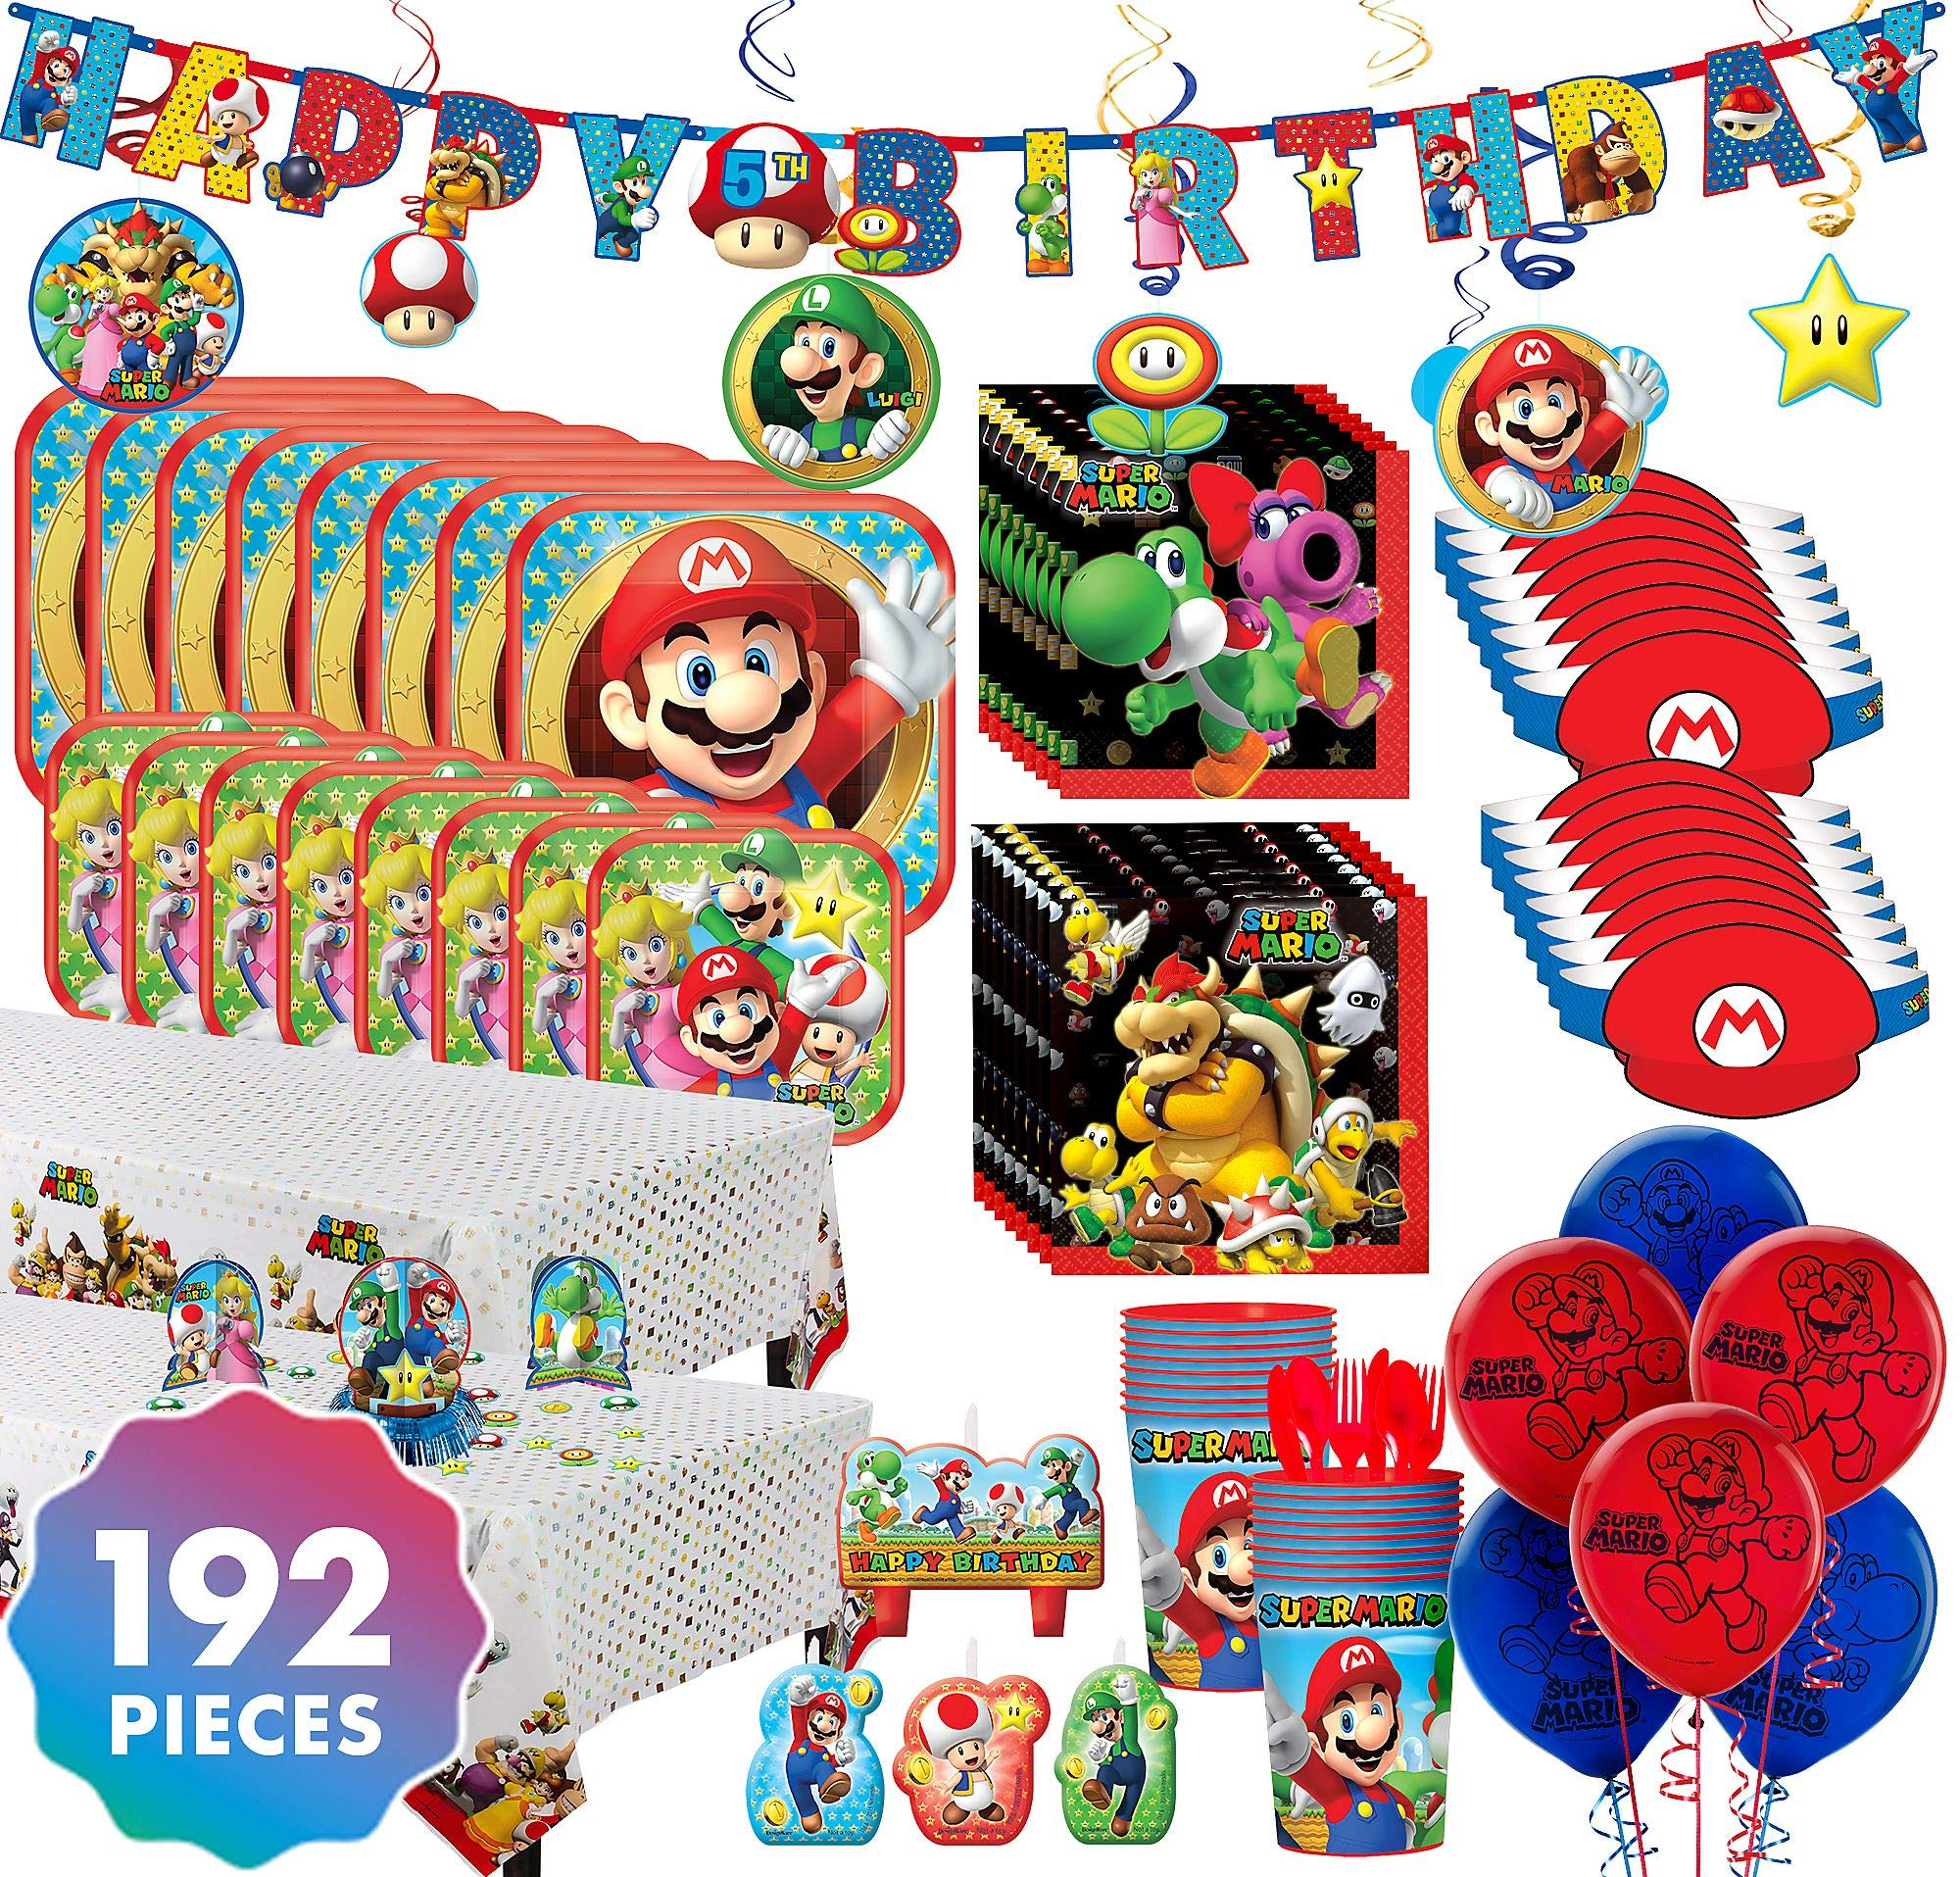 Party City Super Mario Ultimate Party Kit for 16 Guests, 192 Pieces, Includes Tableware, Decorations, Hats, and Balloons